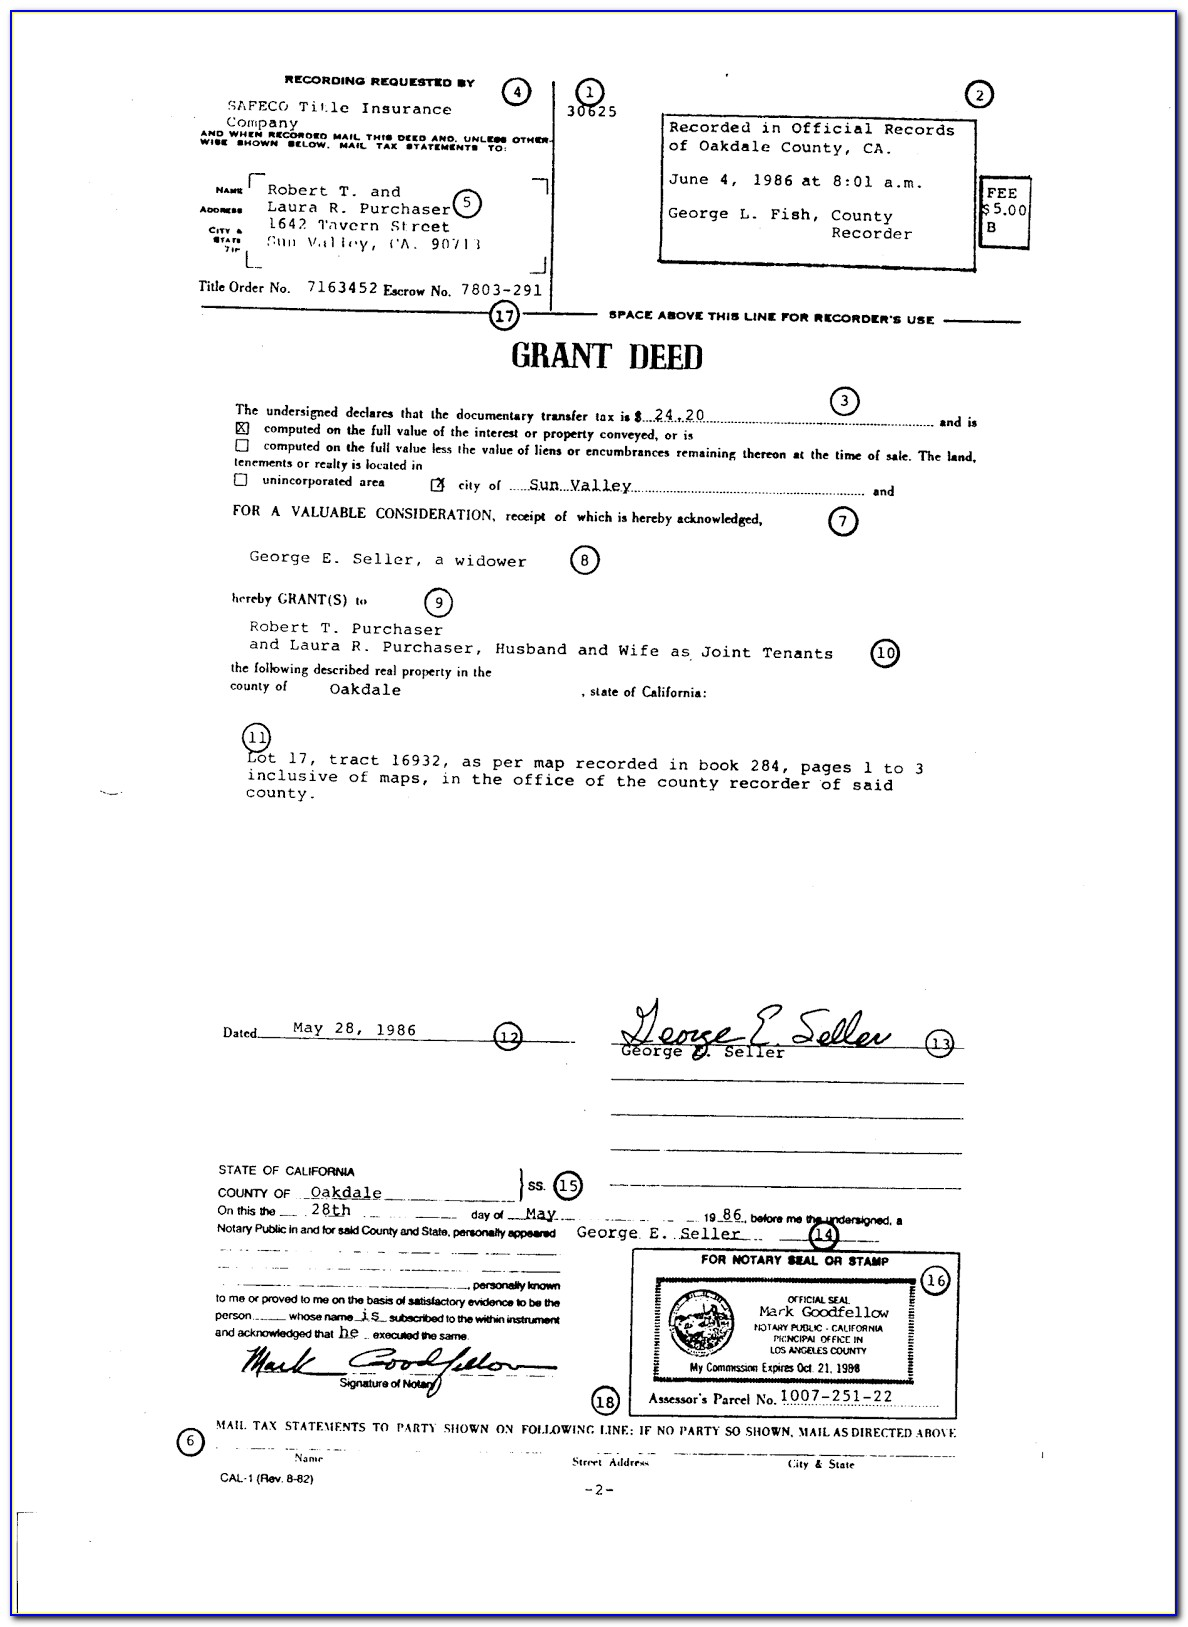 Free Grant Deed Forms Downloads